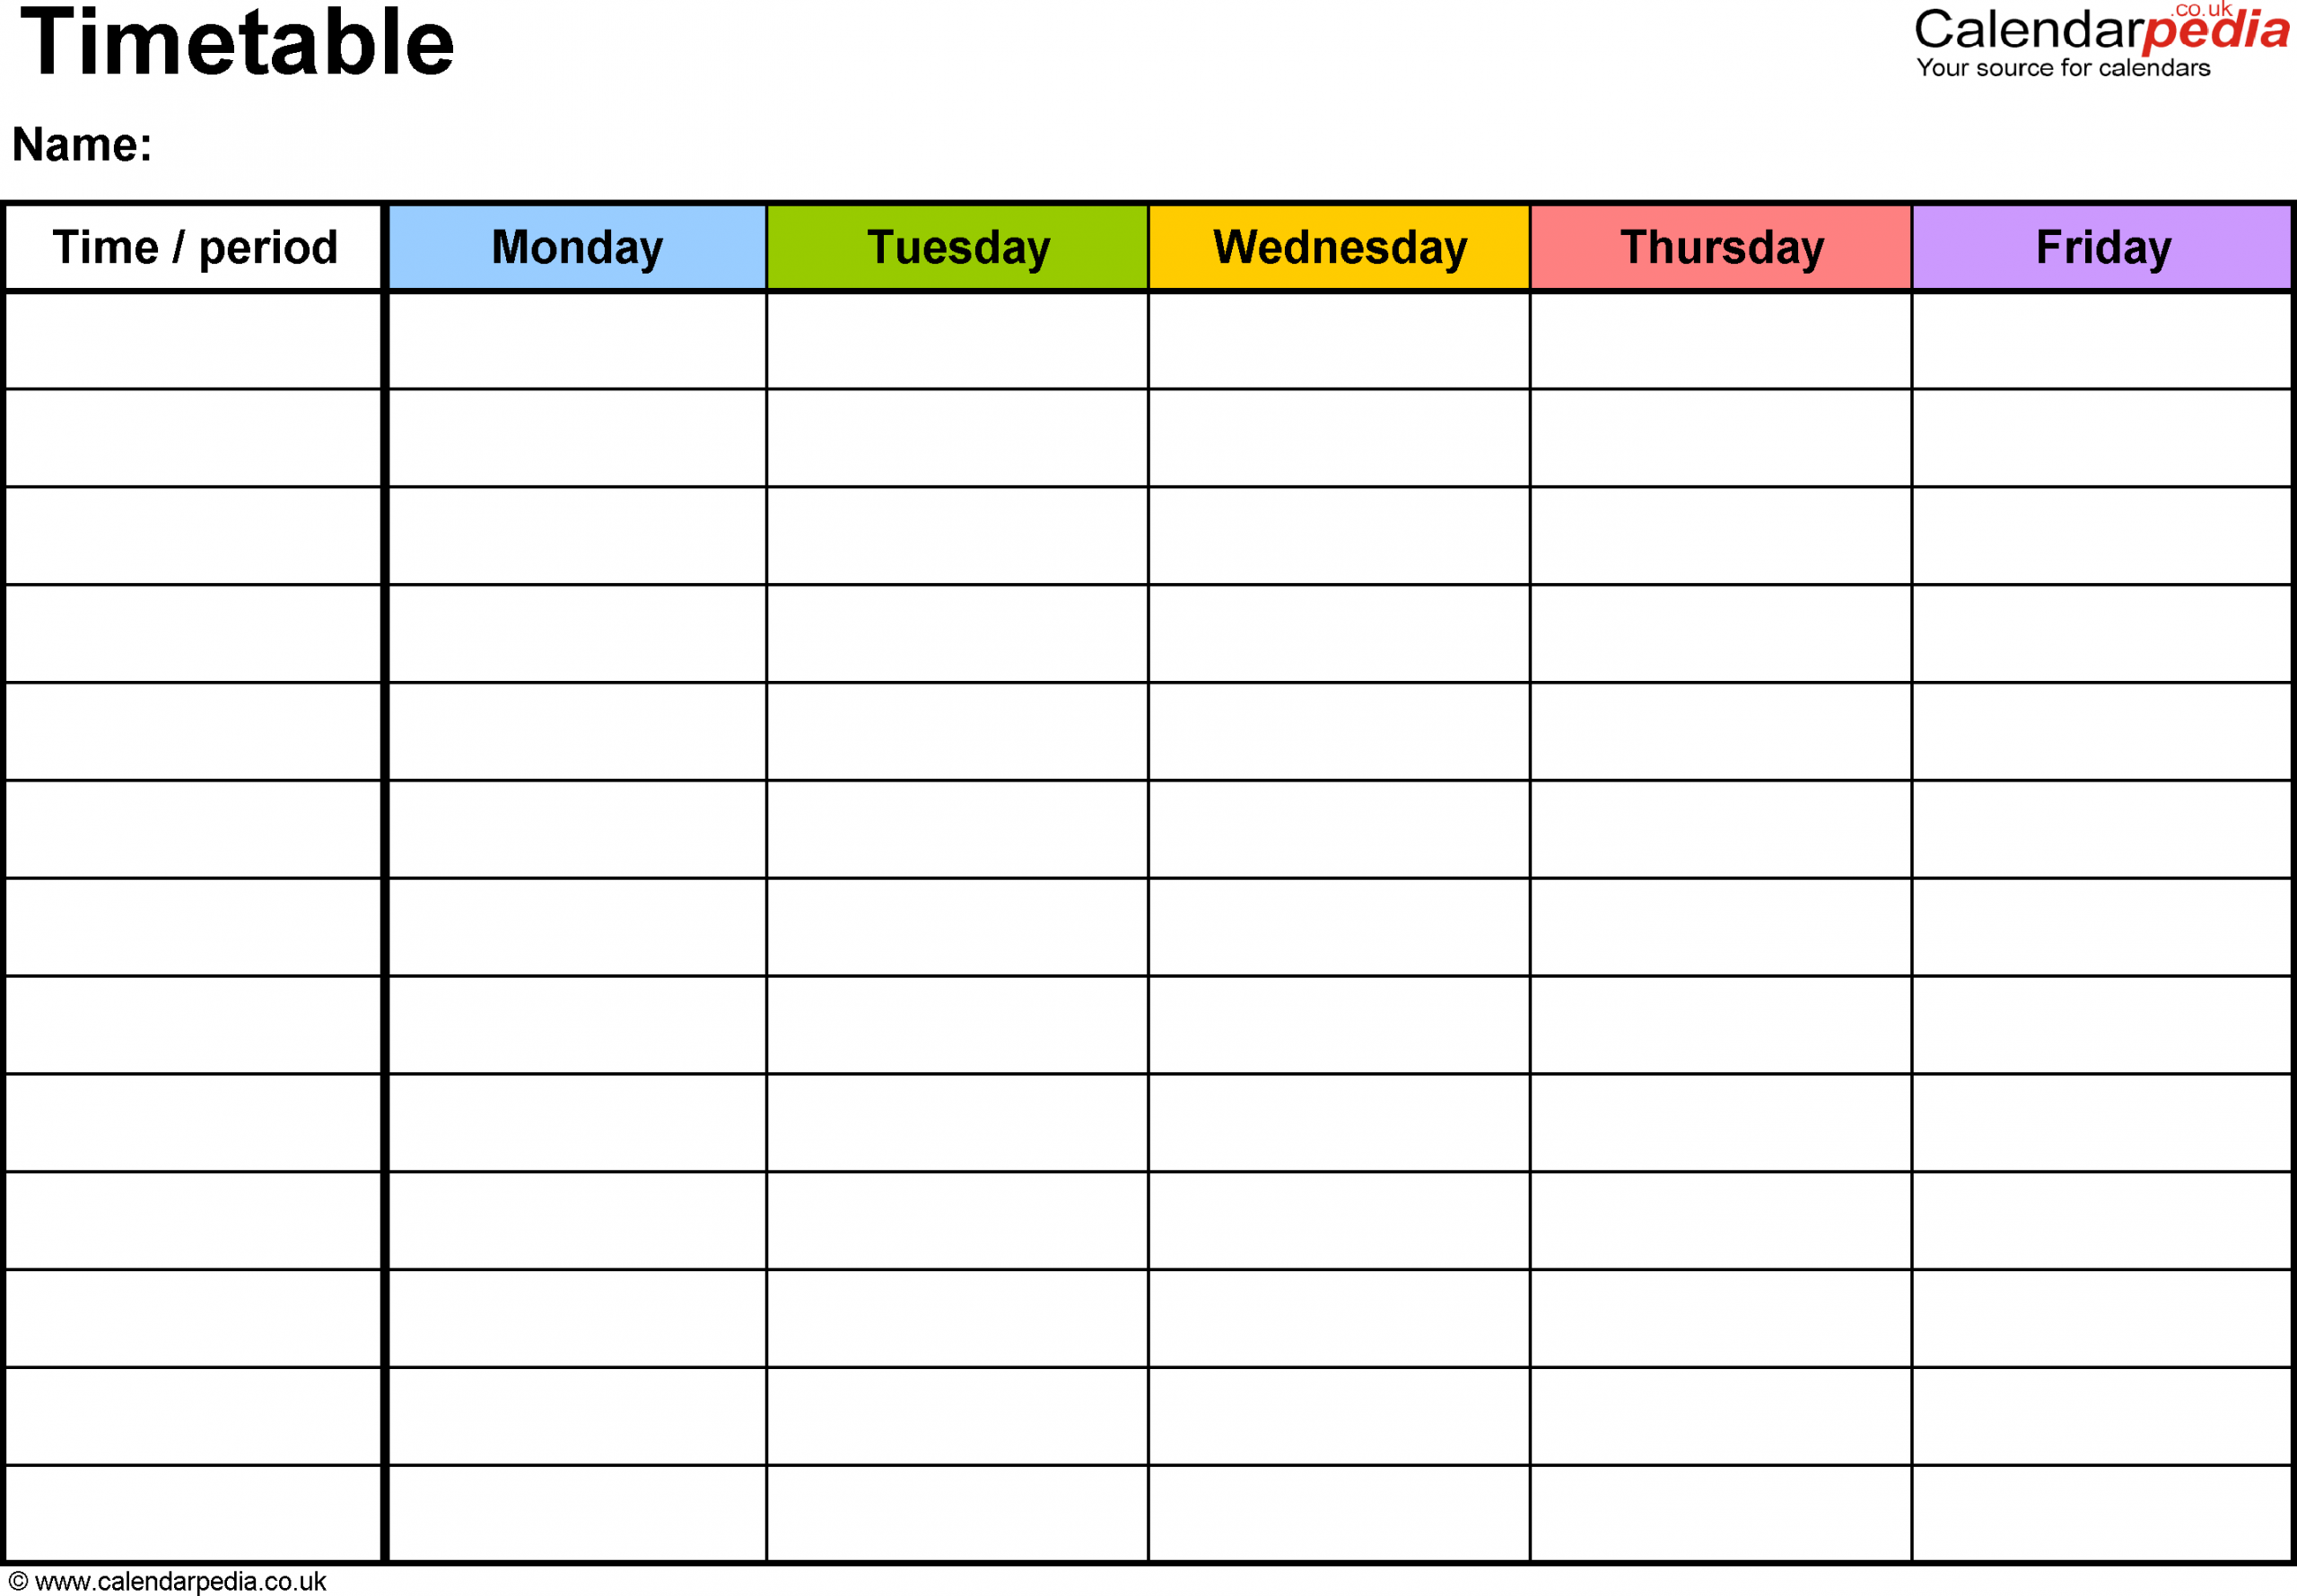 Timetable Template Word - Togo.wpart.co